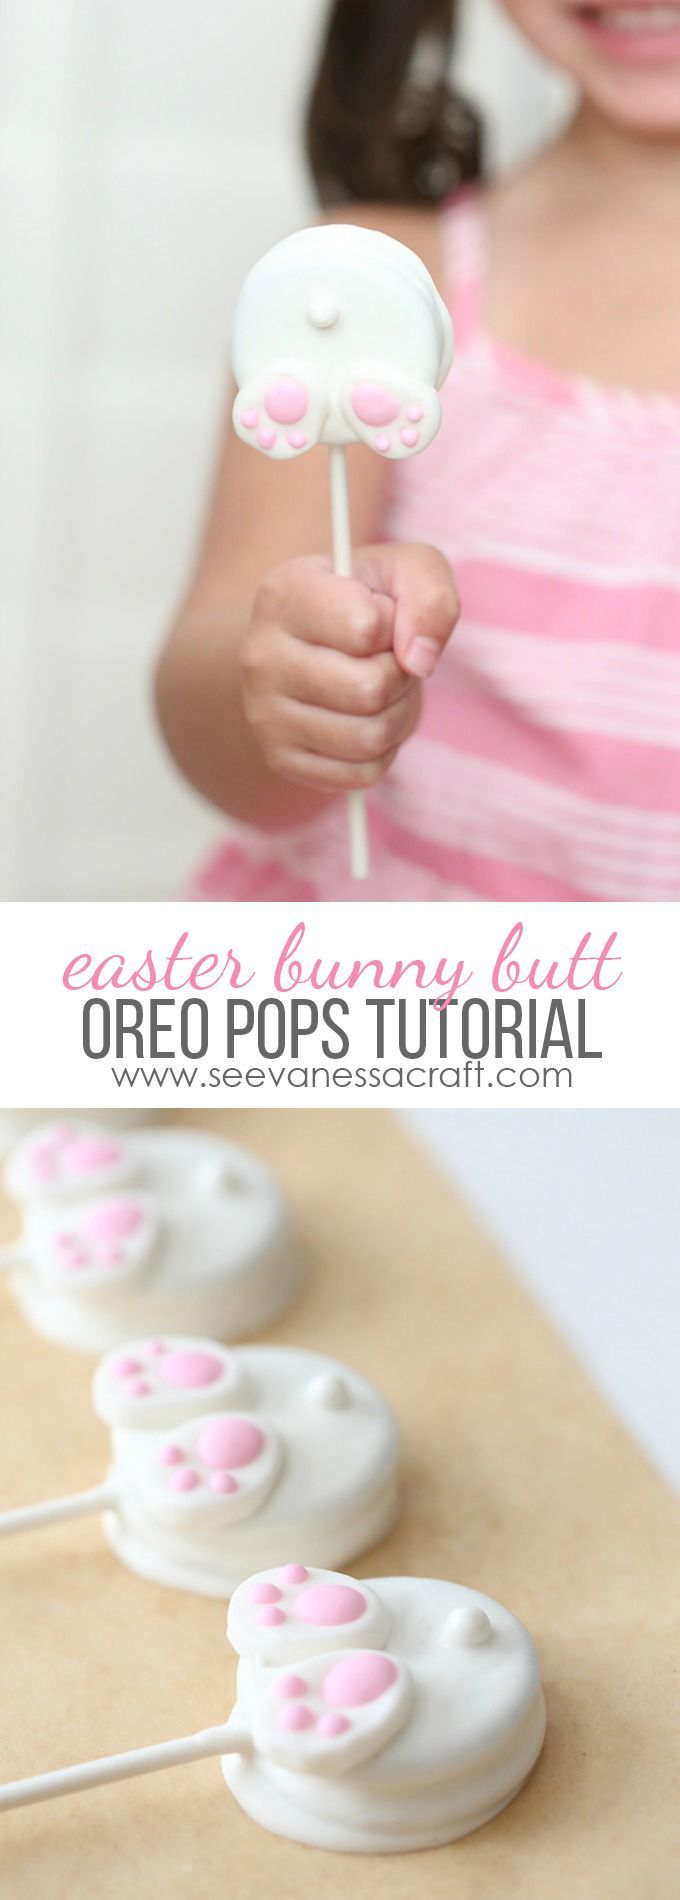 Bunny Butts Oreo Pops - so fun and easy for an Easter or Spring themed party!